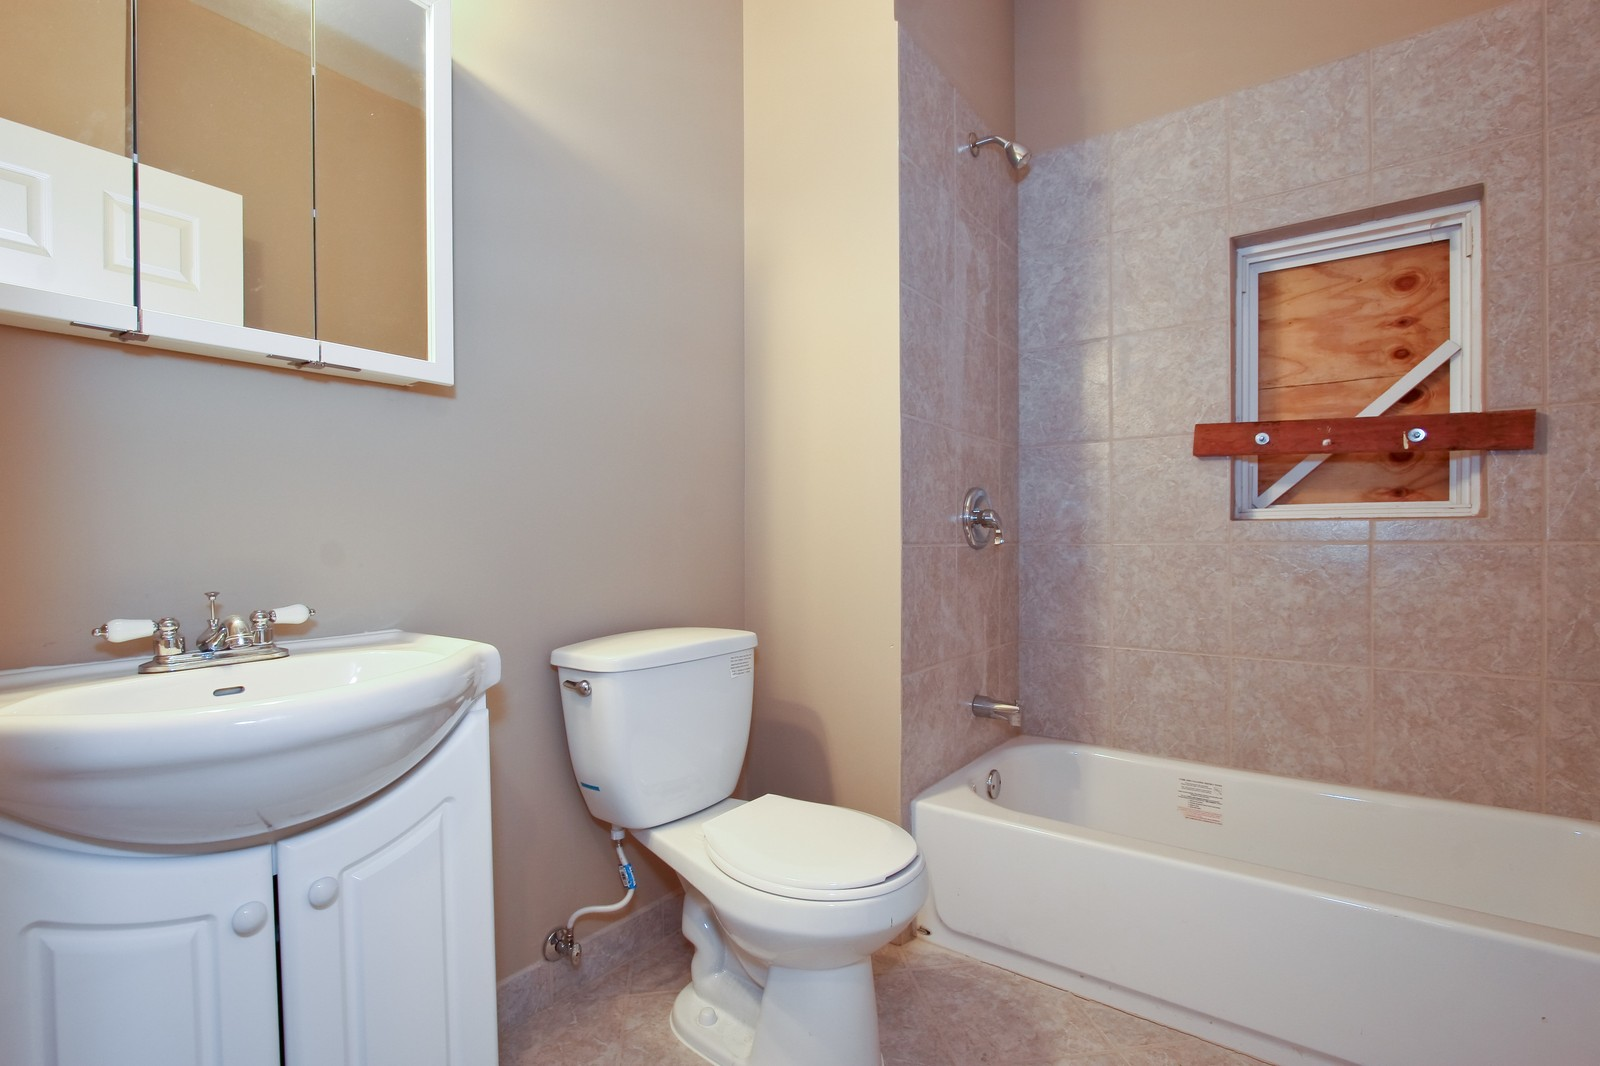 Real Estate Photography - 5237 S Seeley, Chicago, IL, 60609 - Bathroom